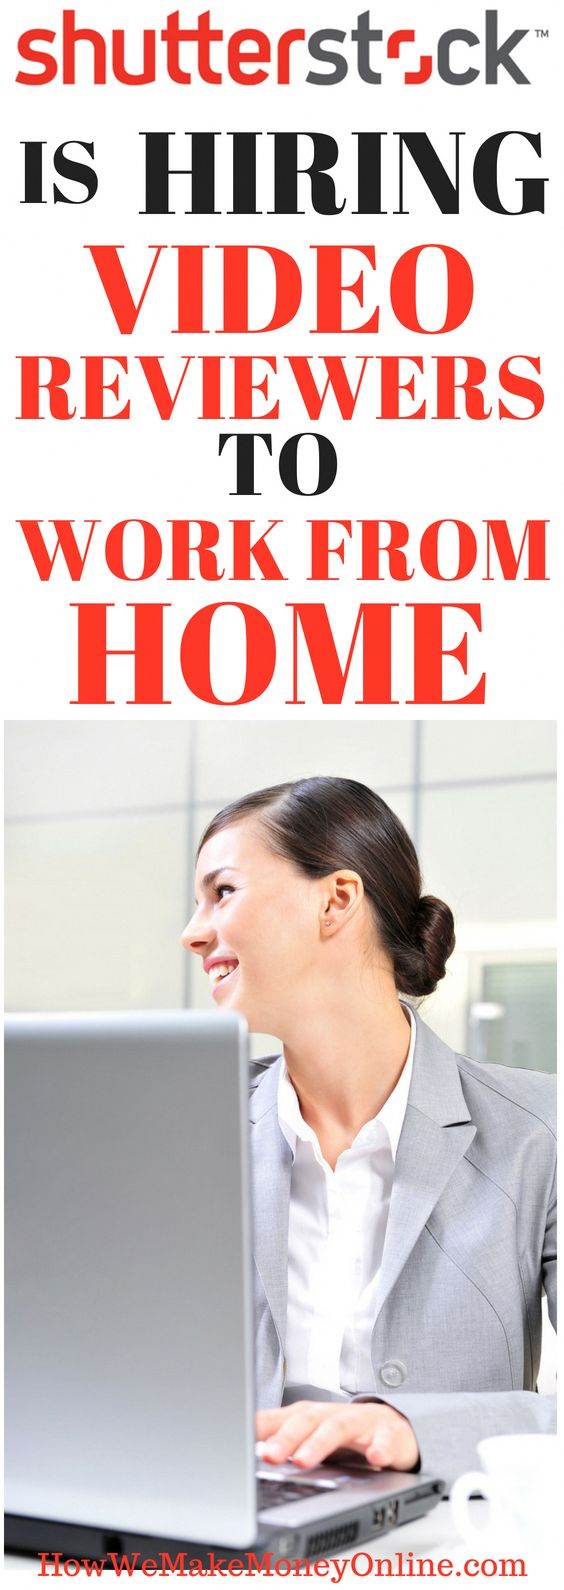 Shutterstock is Hiring Work from Home Video Review…